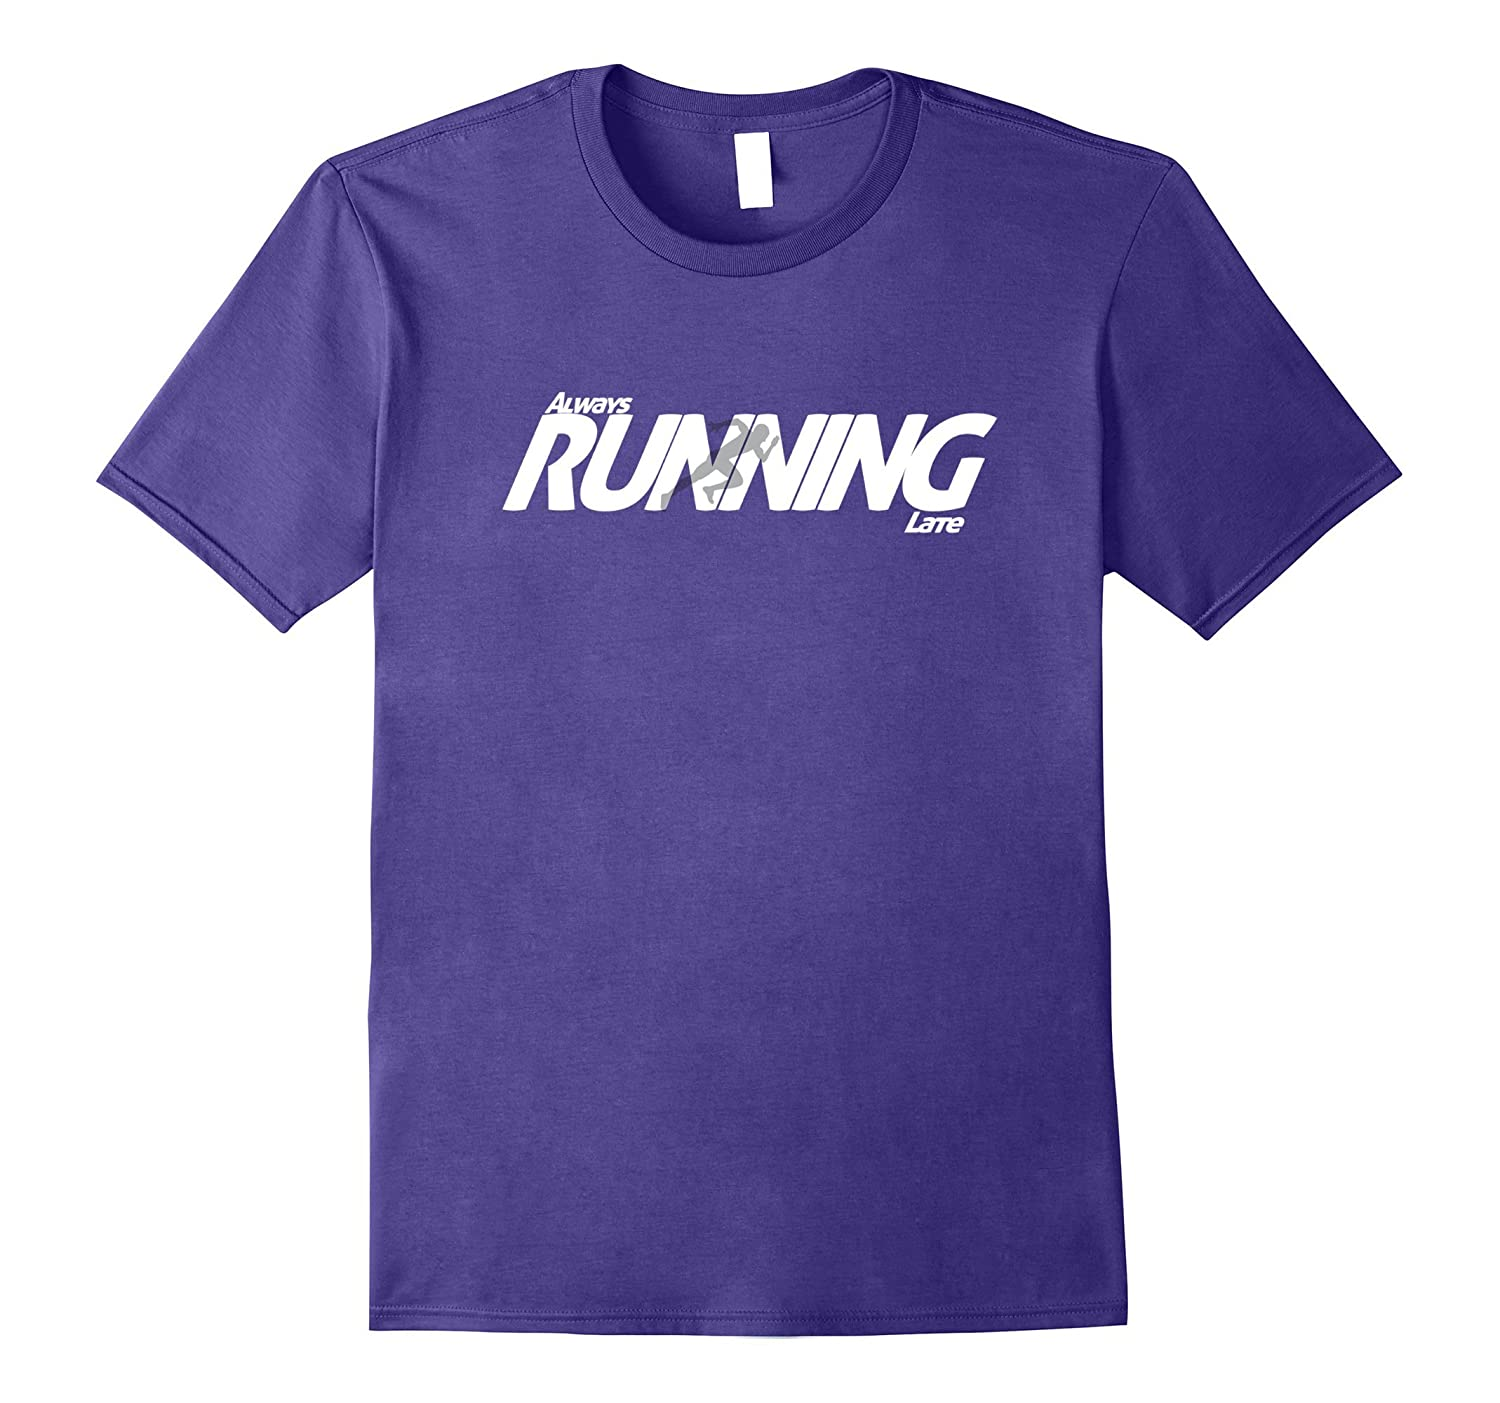 Always Late Runners Athletic Style Funny Shirt-FL